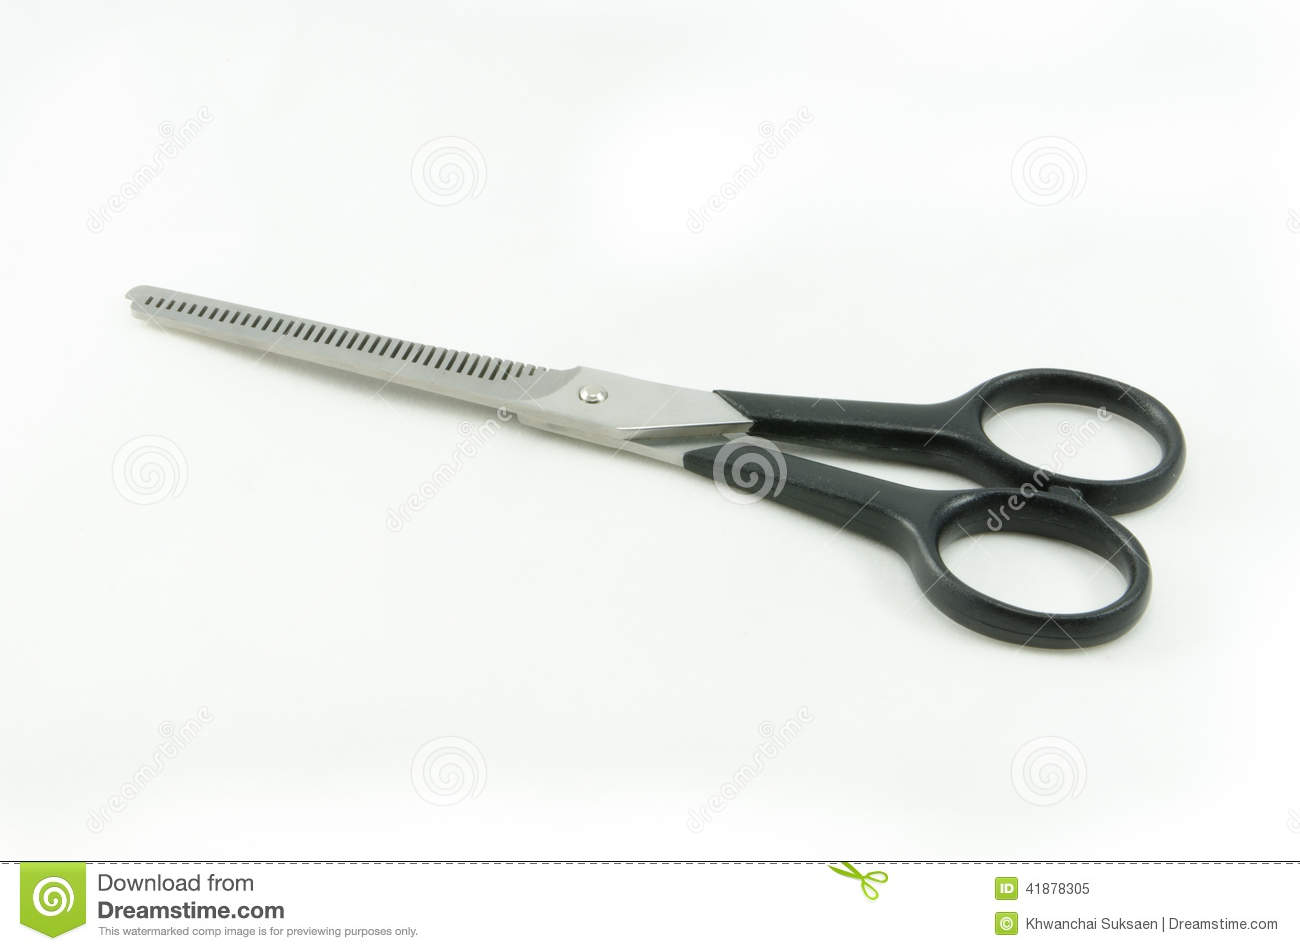 how to cut plastic with scissors